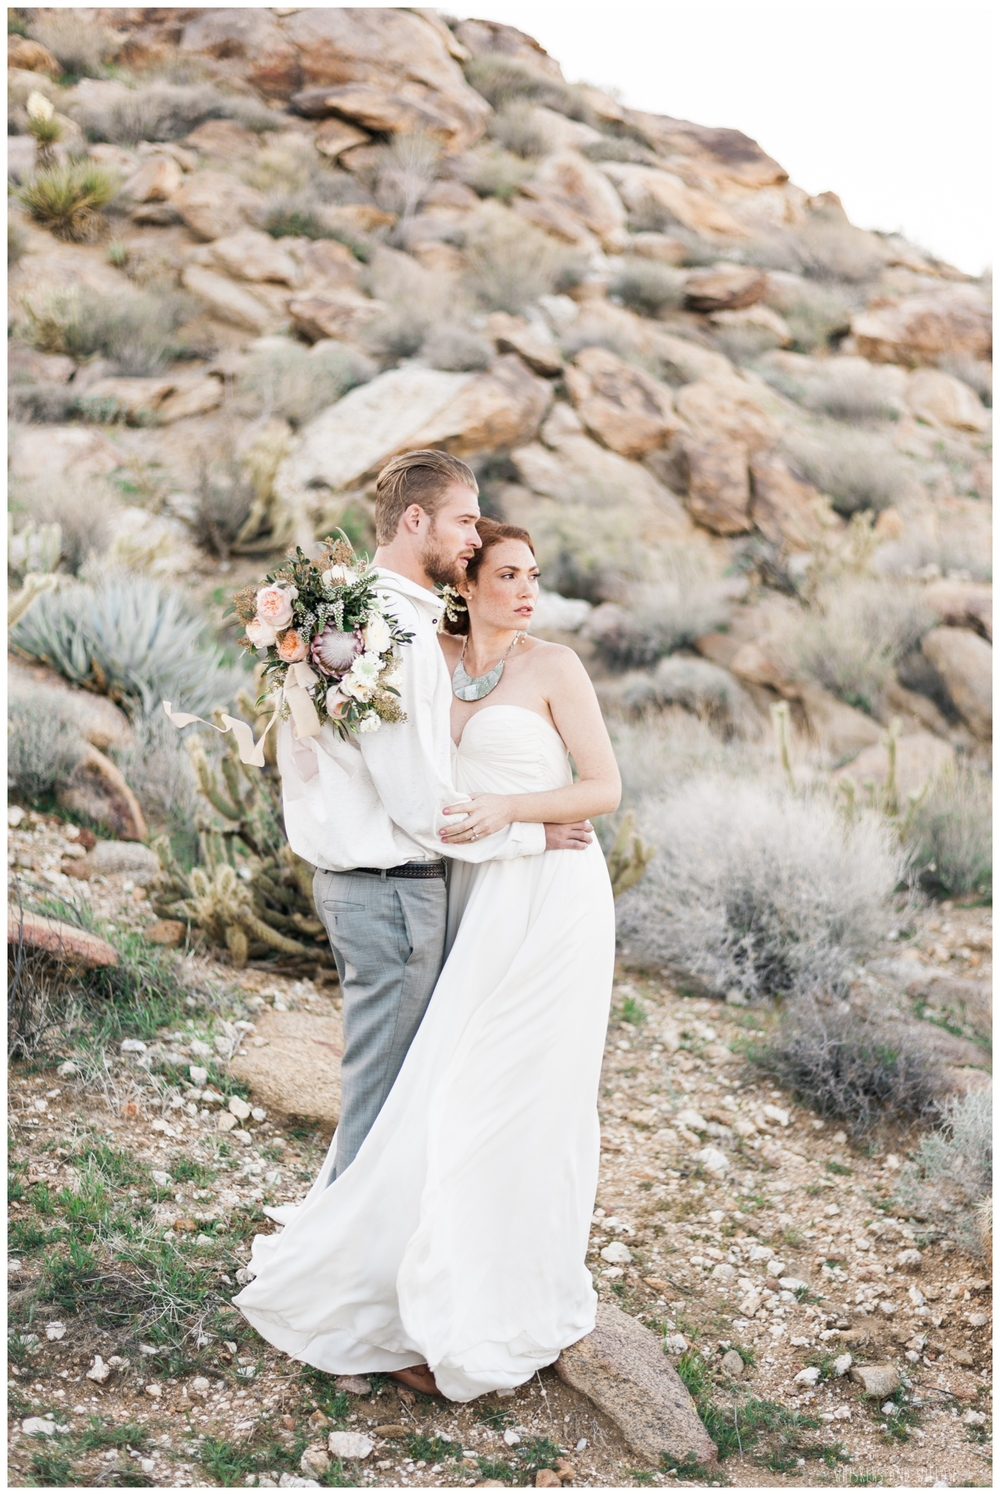 Pastel desert wedding | San Diego wedding | Whiskers and Willow Photography